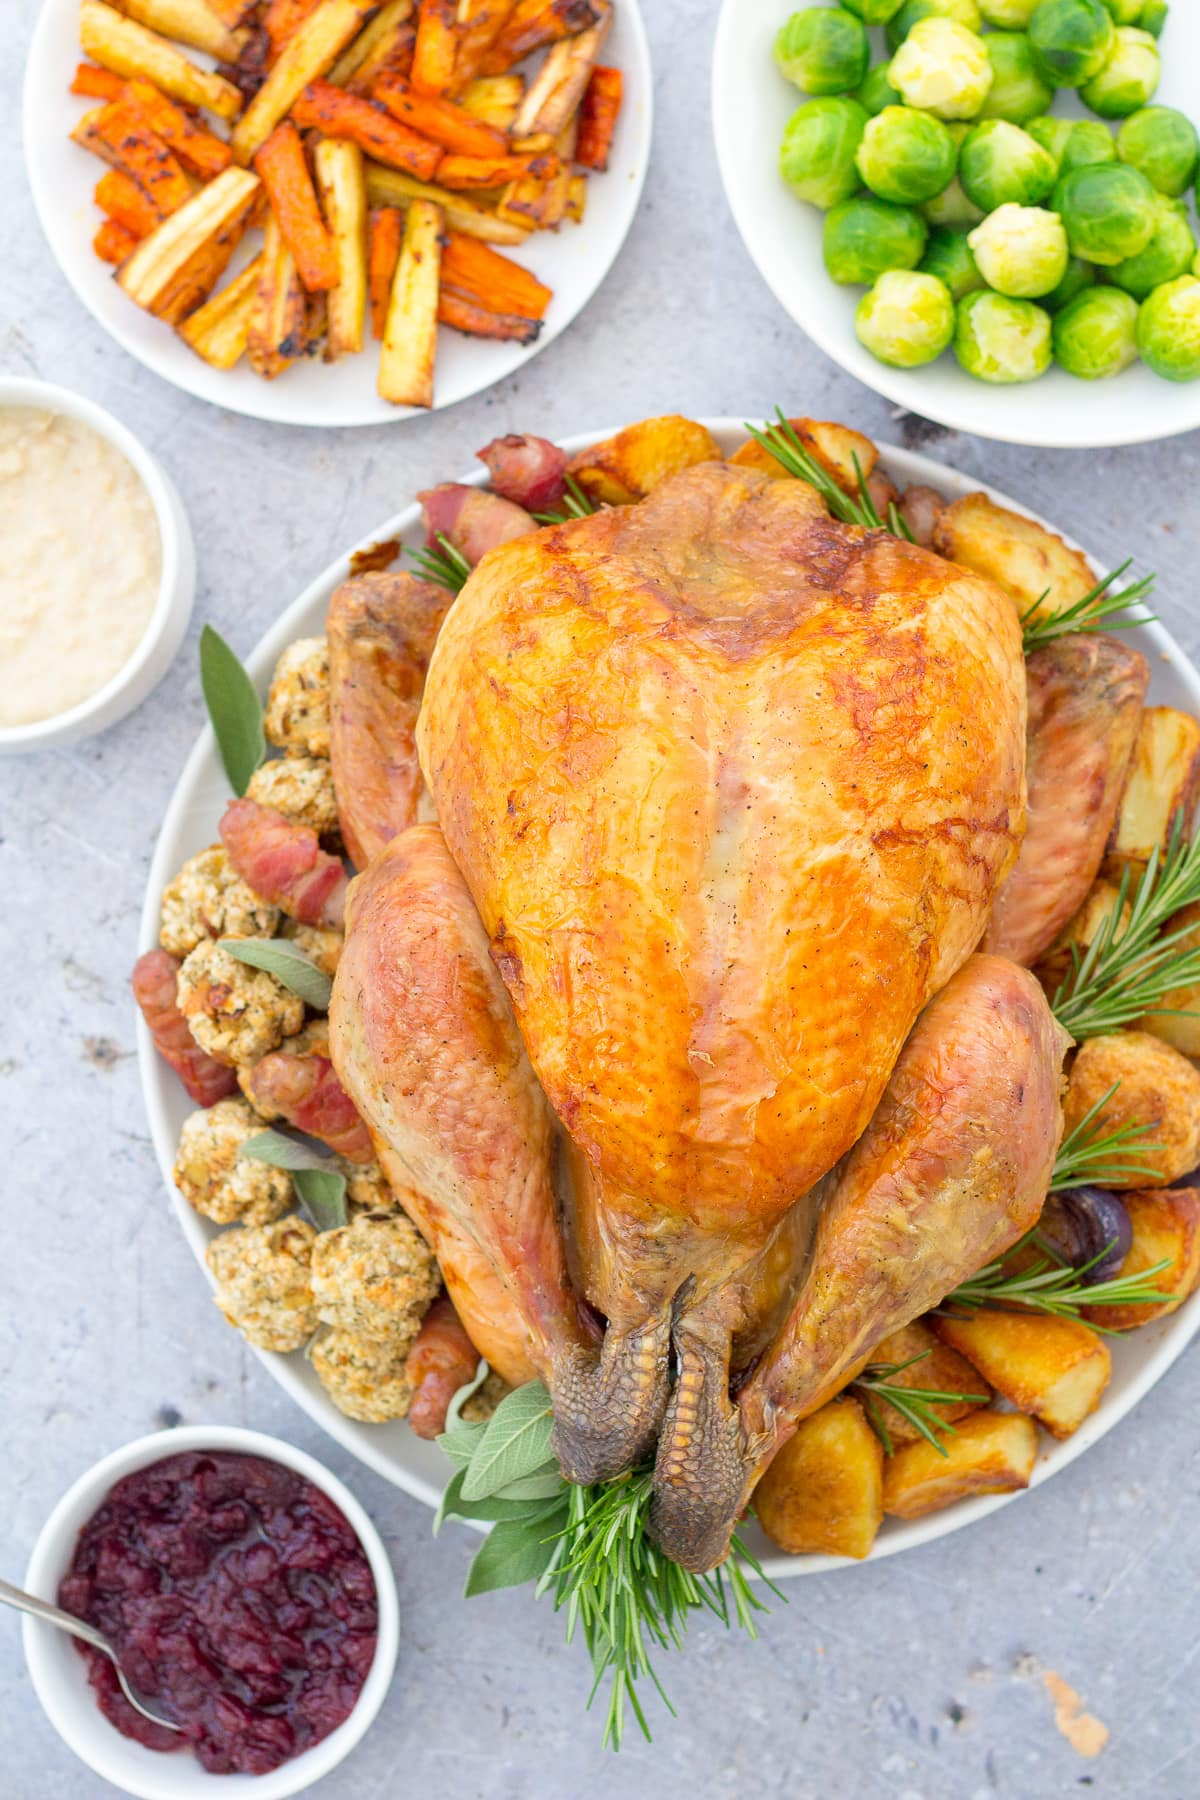 10 Tricks To Make Cooking Your Christmas Dinner Easy Peasy Easy